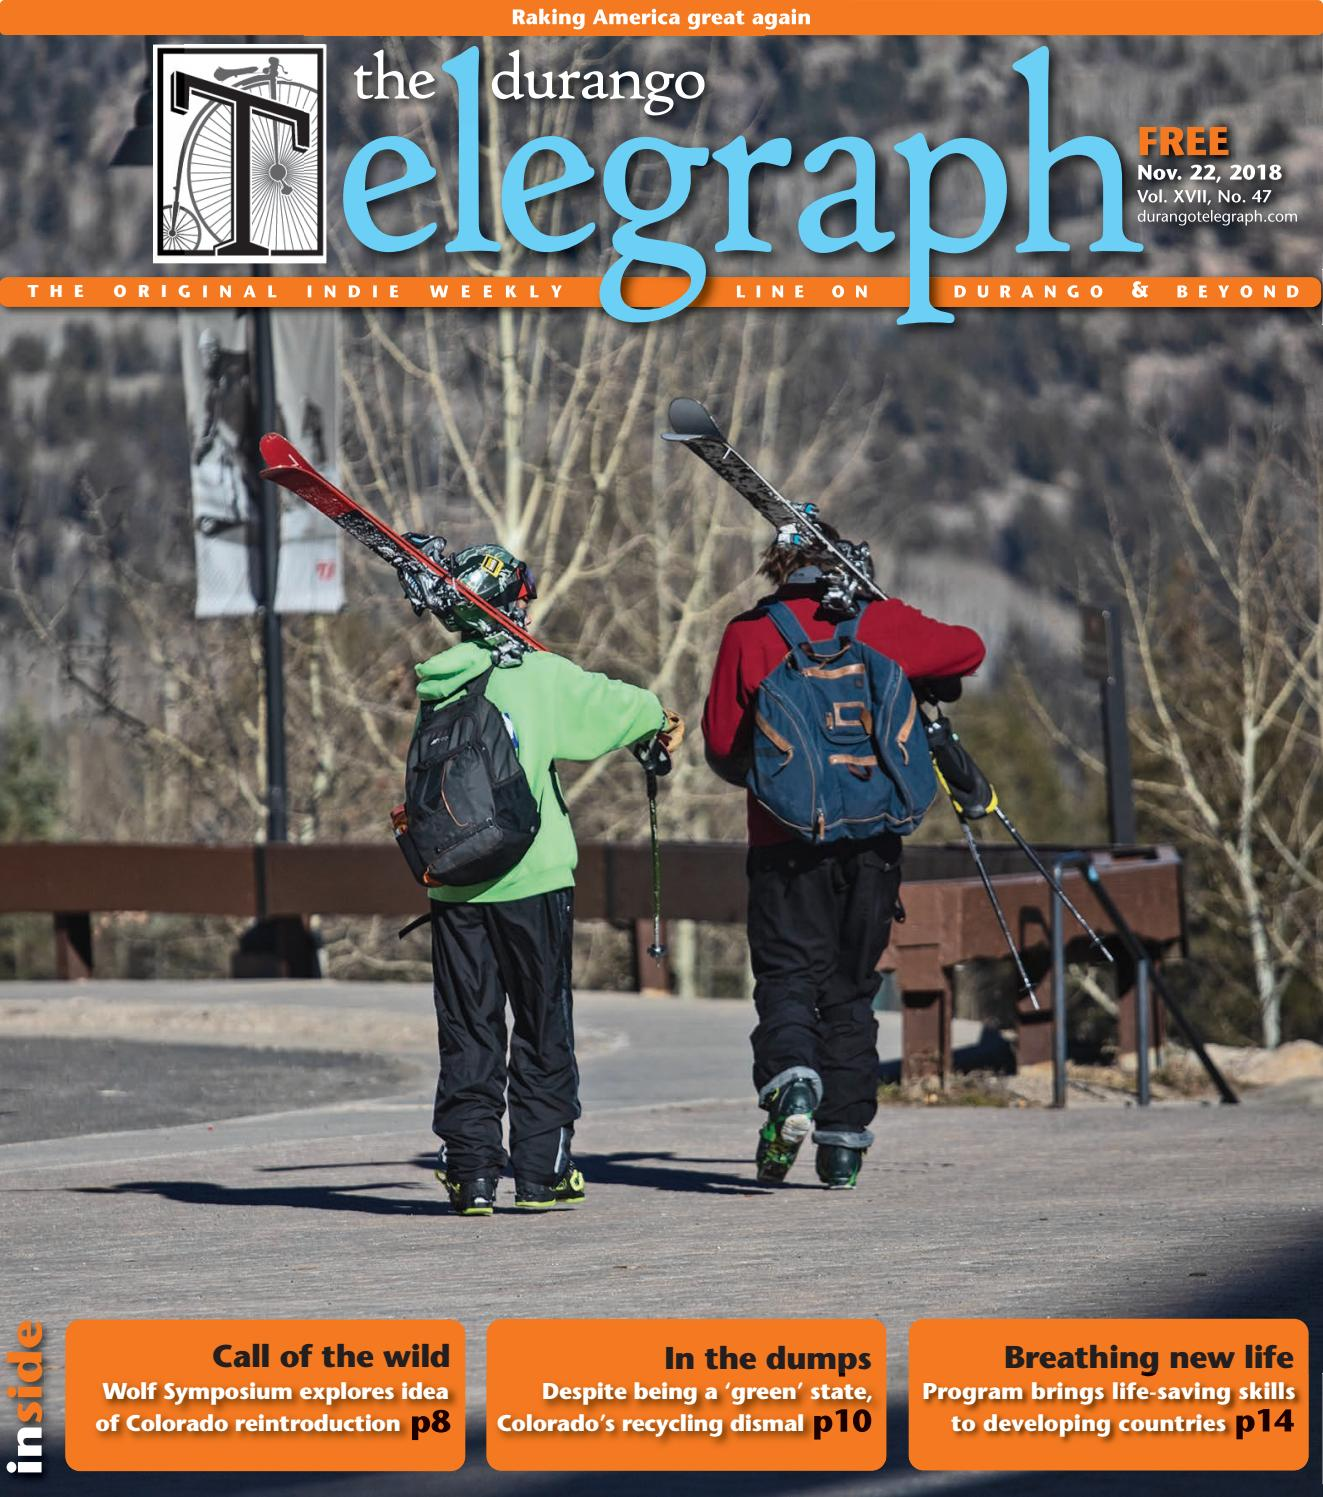 Durango Telegraph - November 21, 2018 by Durango Telegraph - issuu